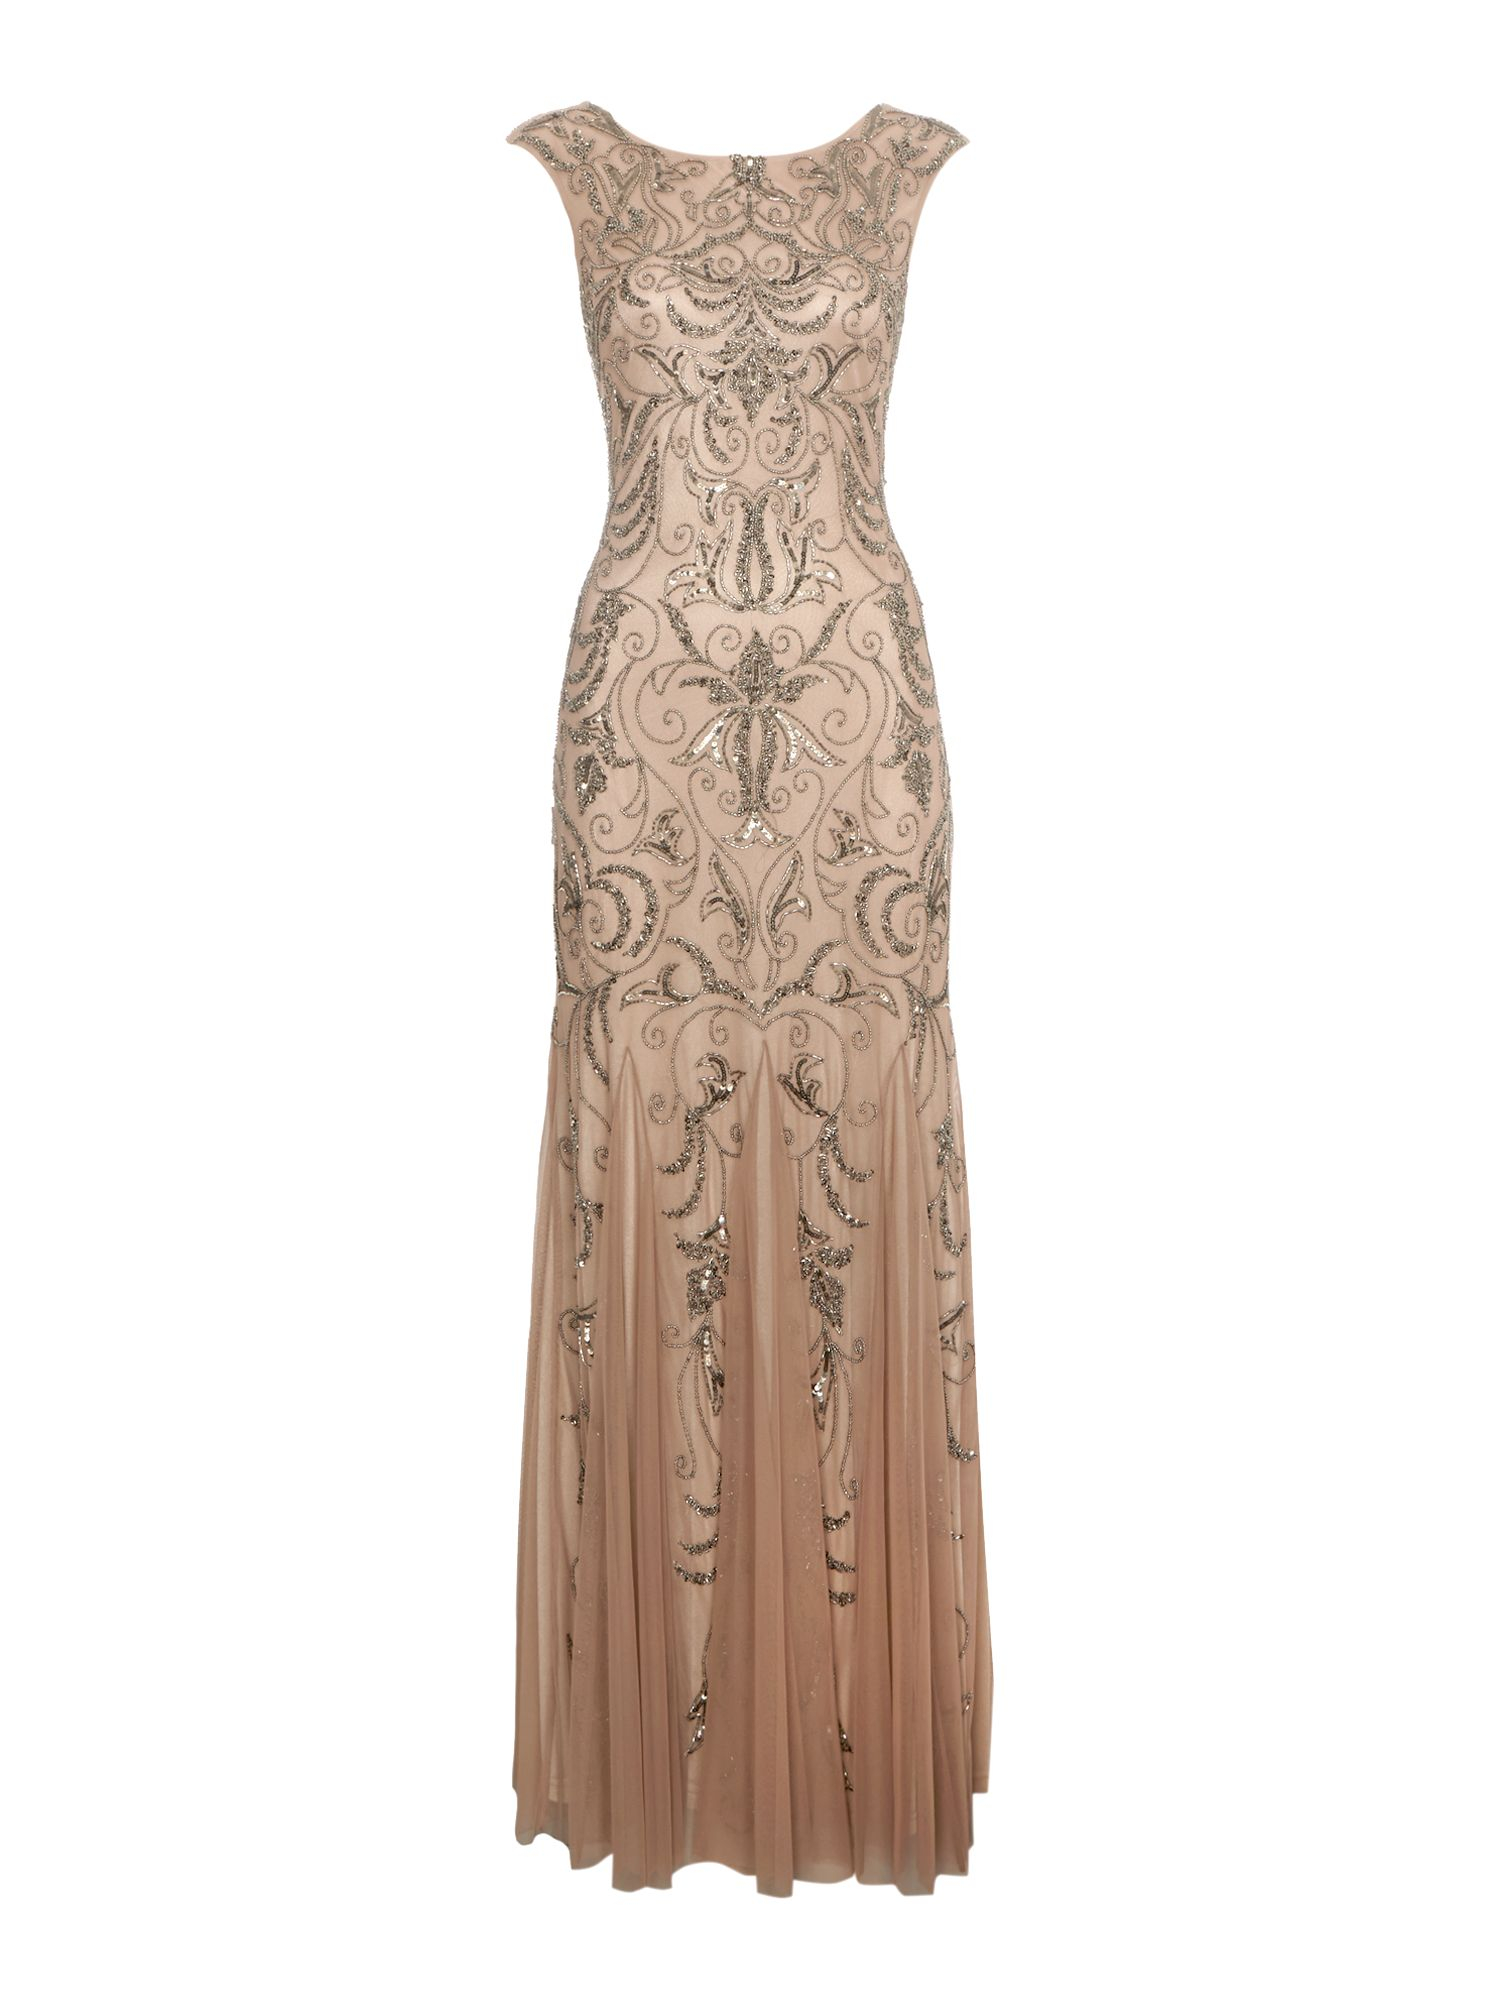 Adrianna Papell Cap Sleeve Beaded Dress in Gold (Buff) | Lyst